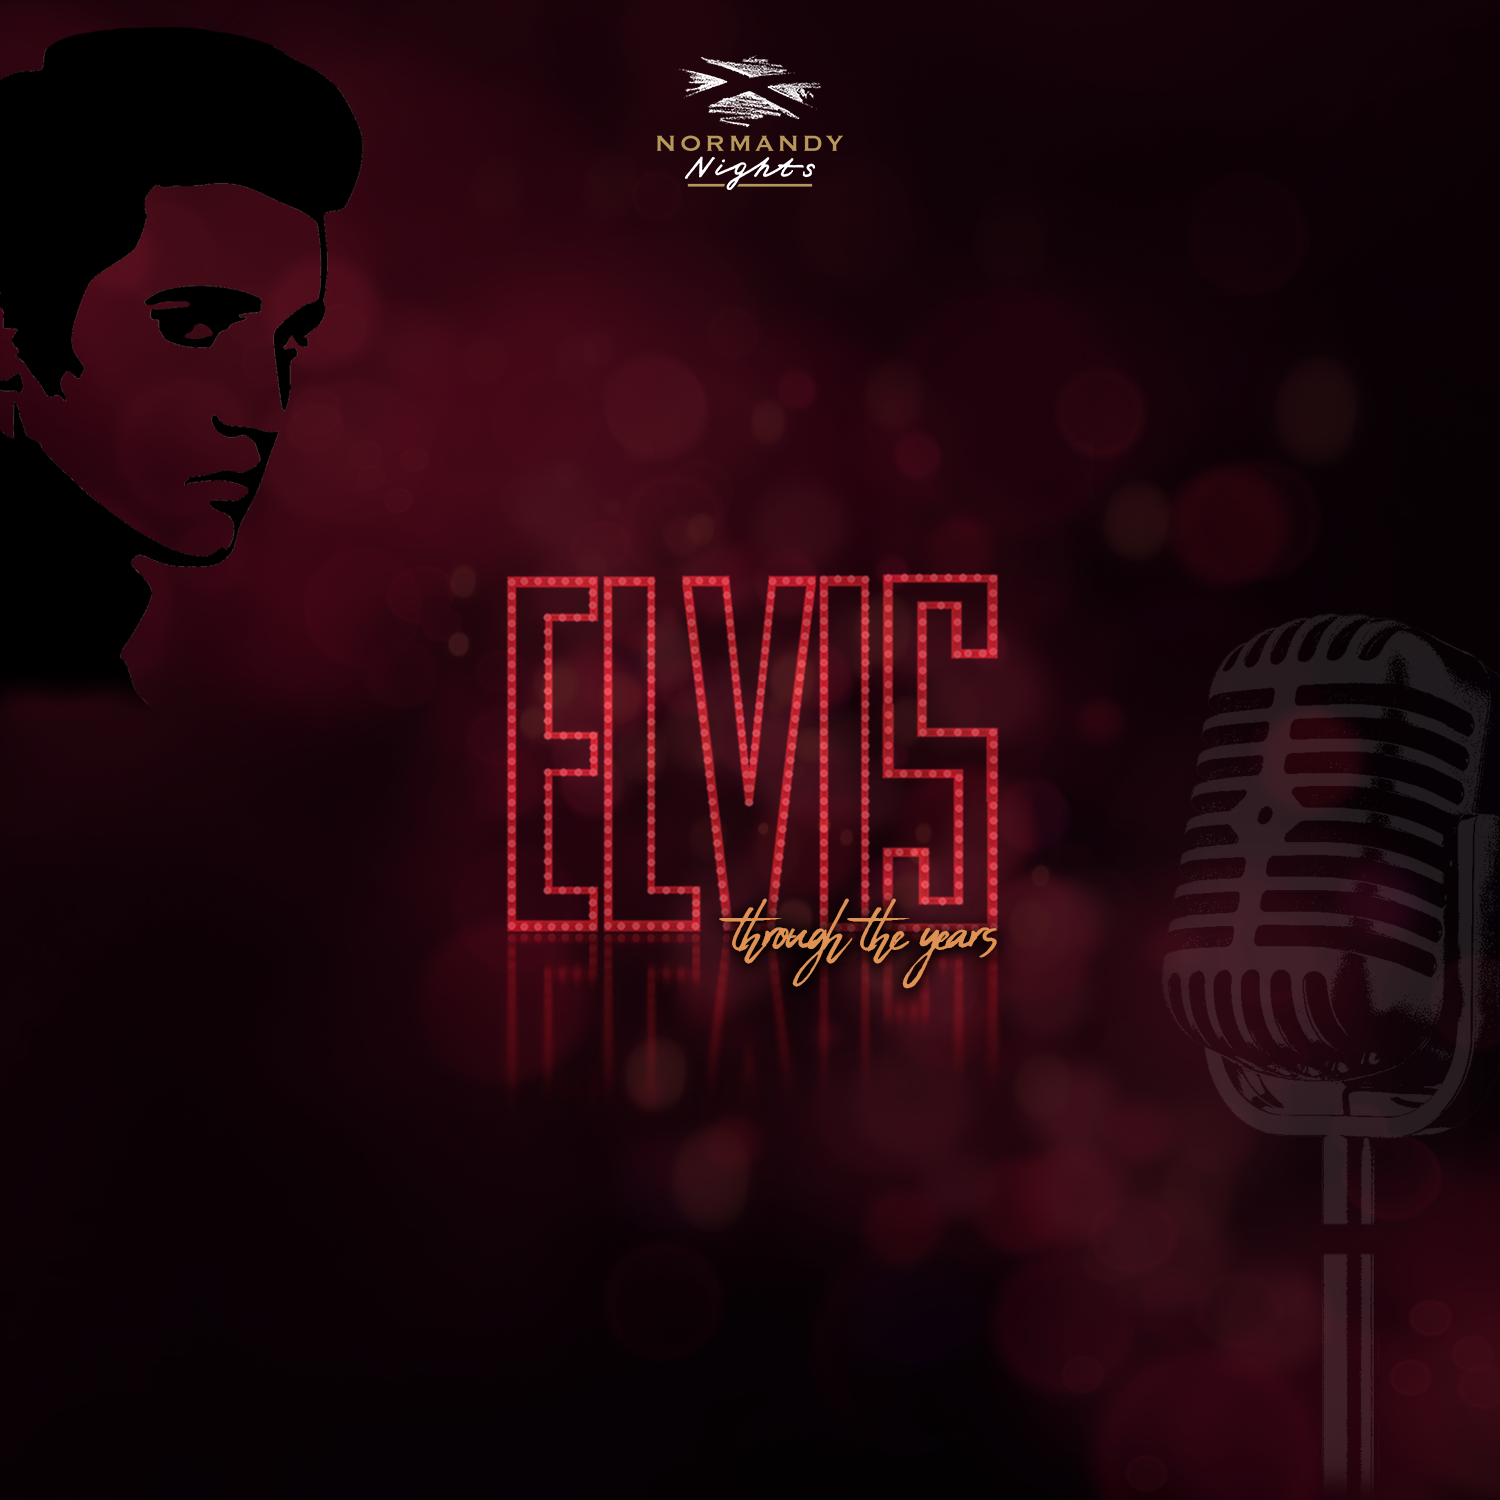 Normandy Hotel tribute night, Elvis through the years